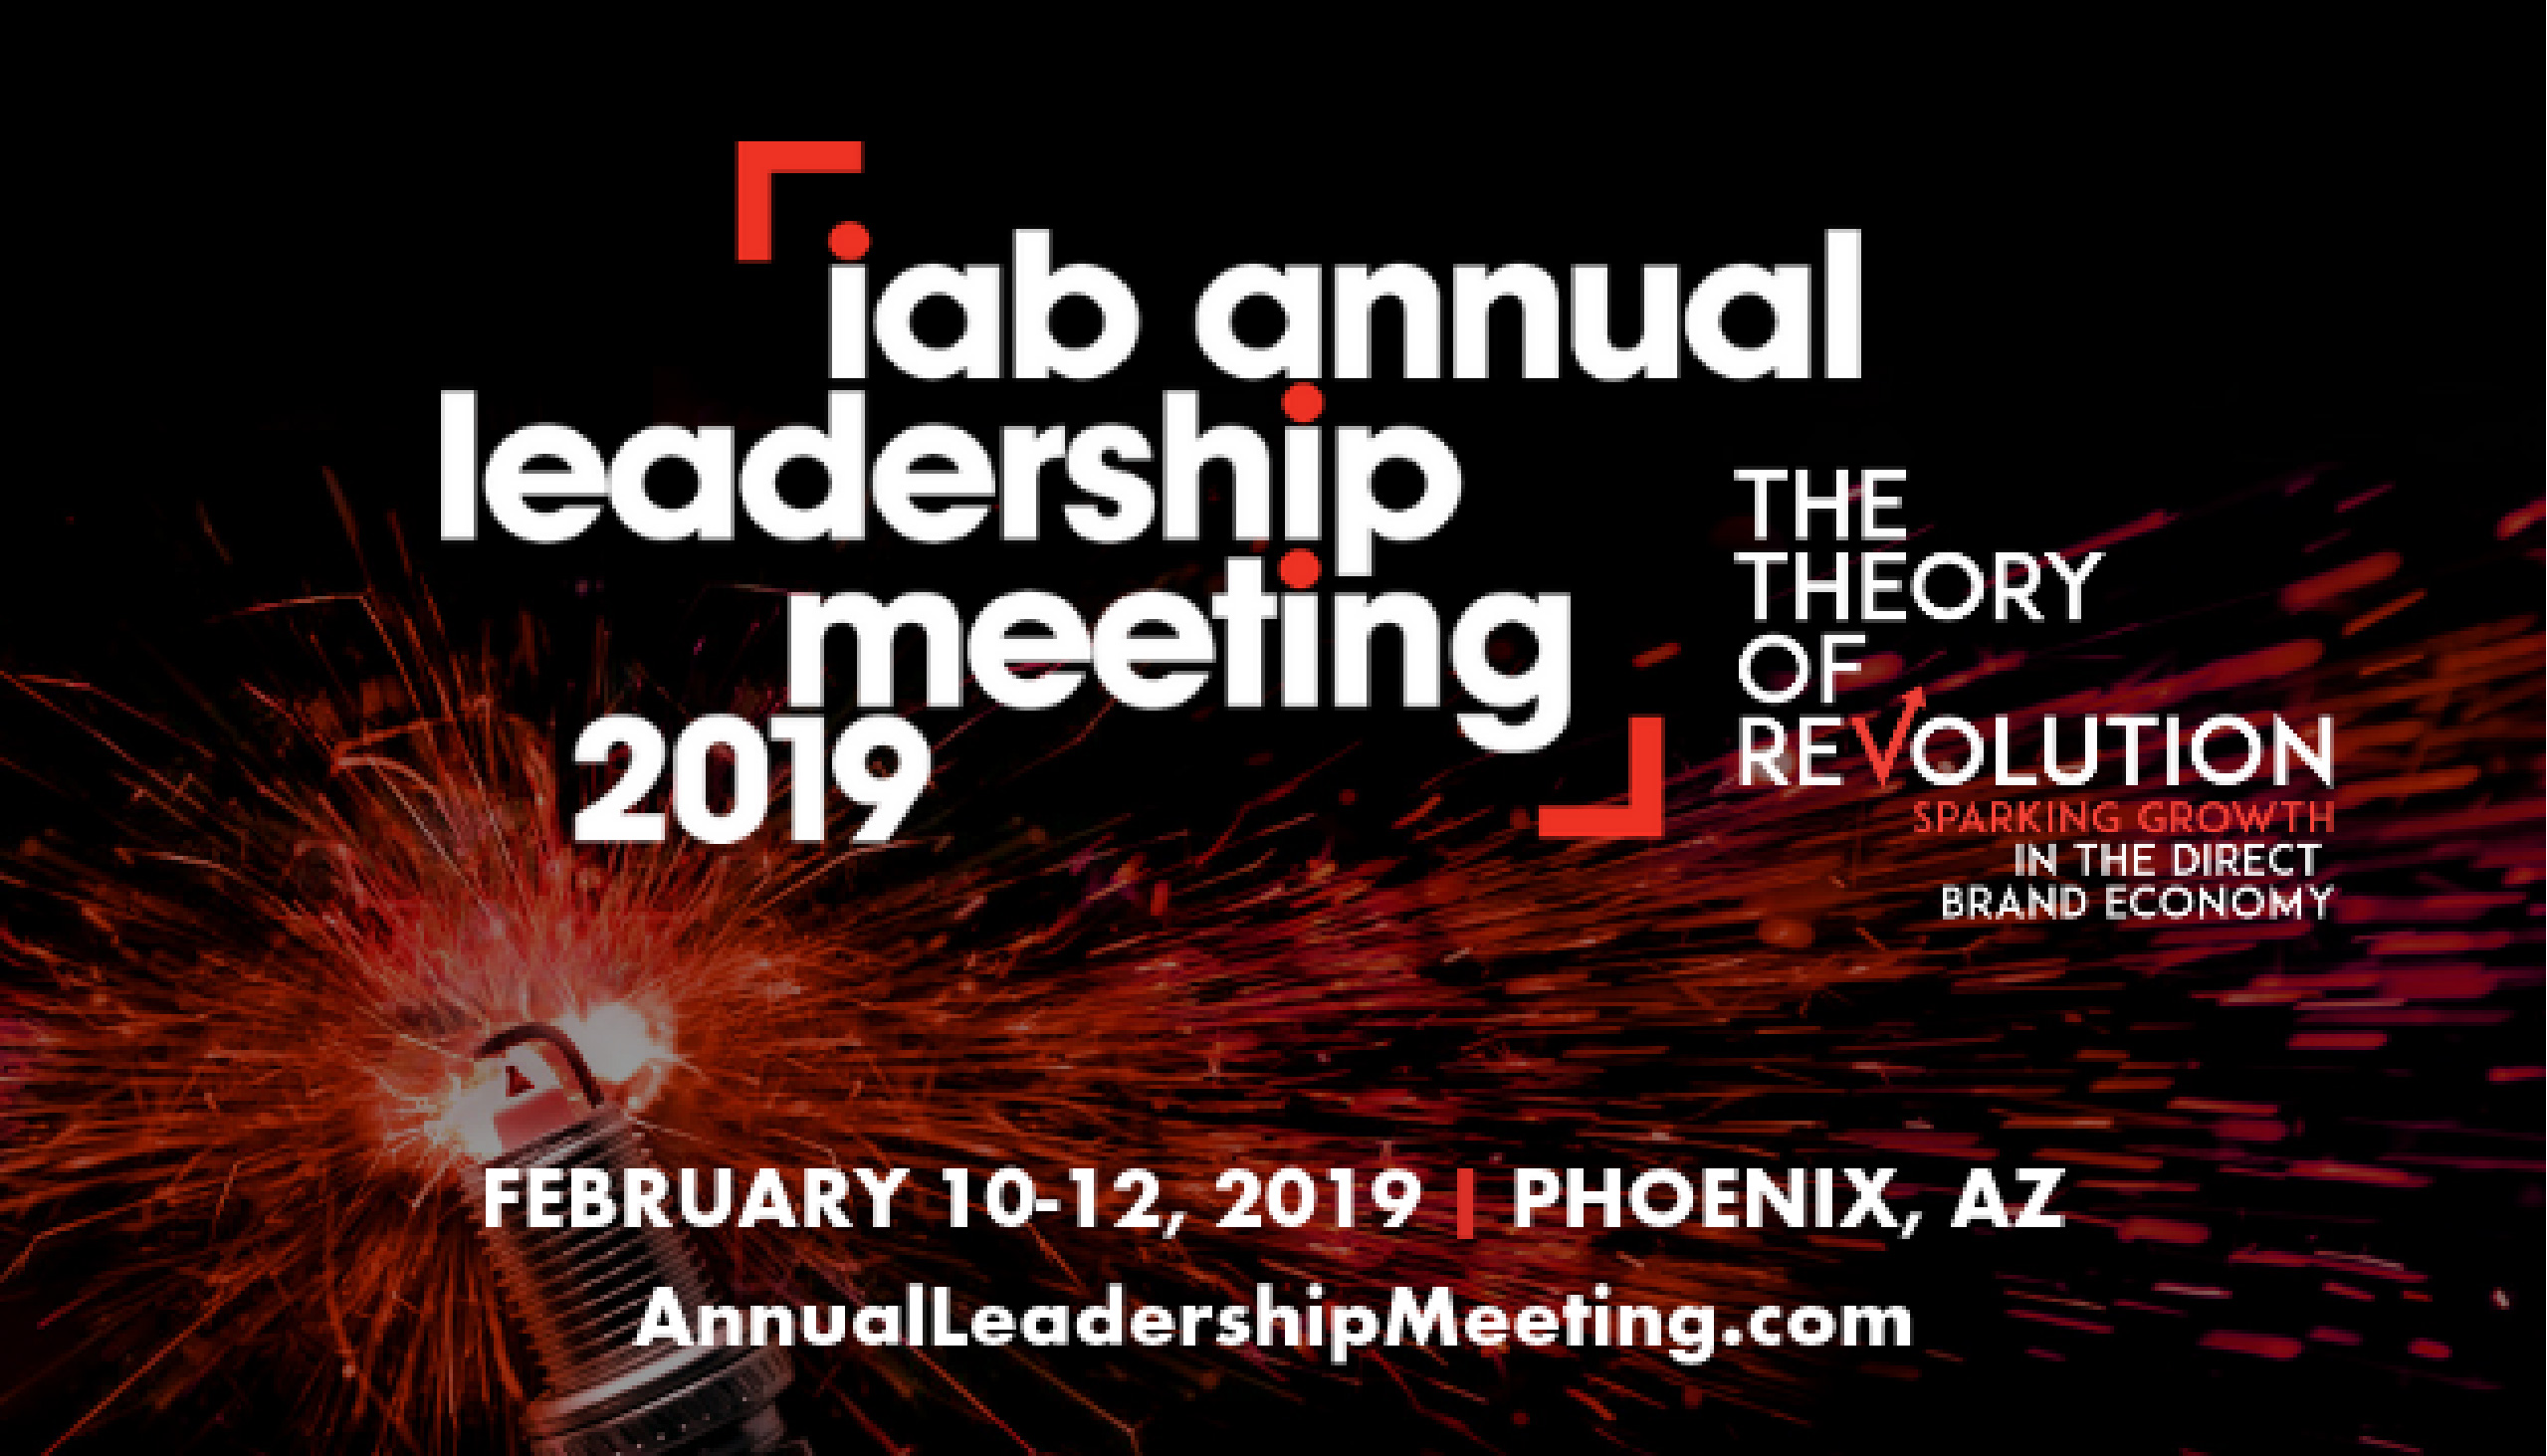 IAB Annual leadership meeting 2019